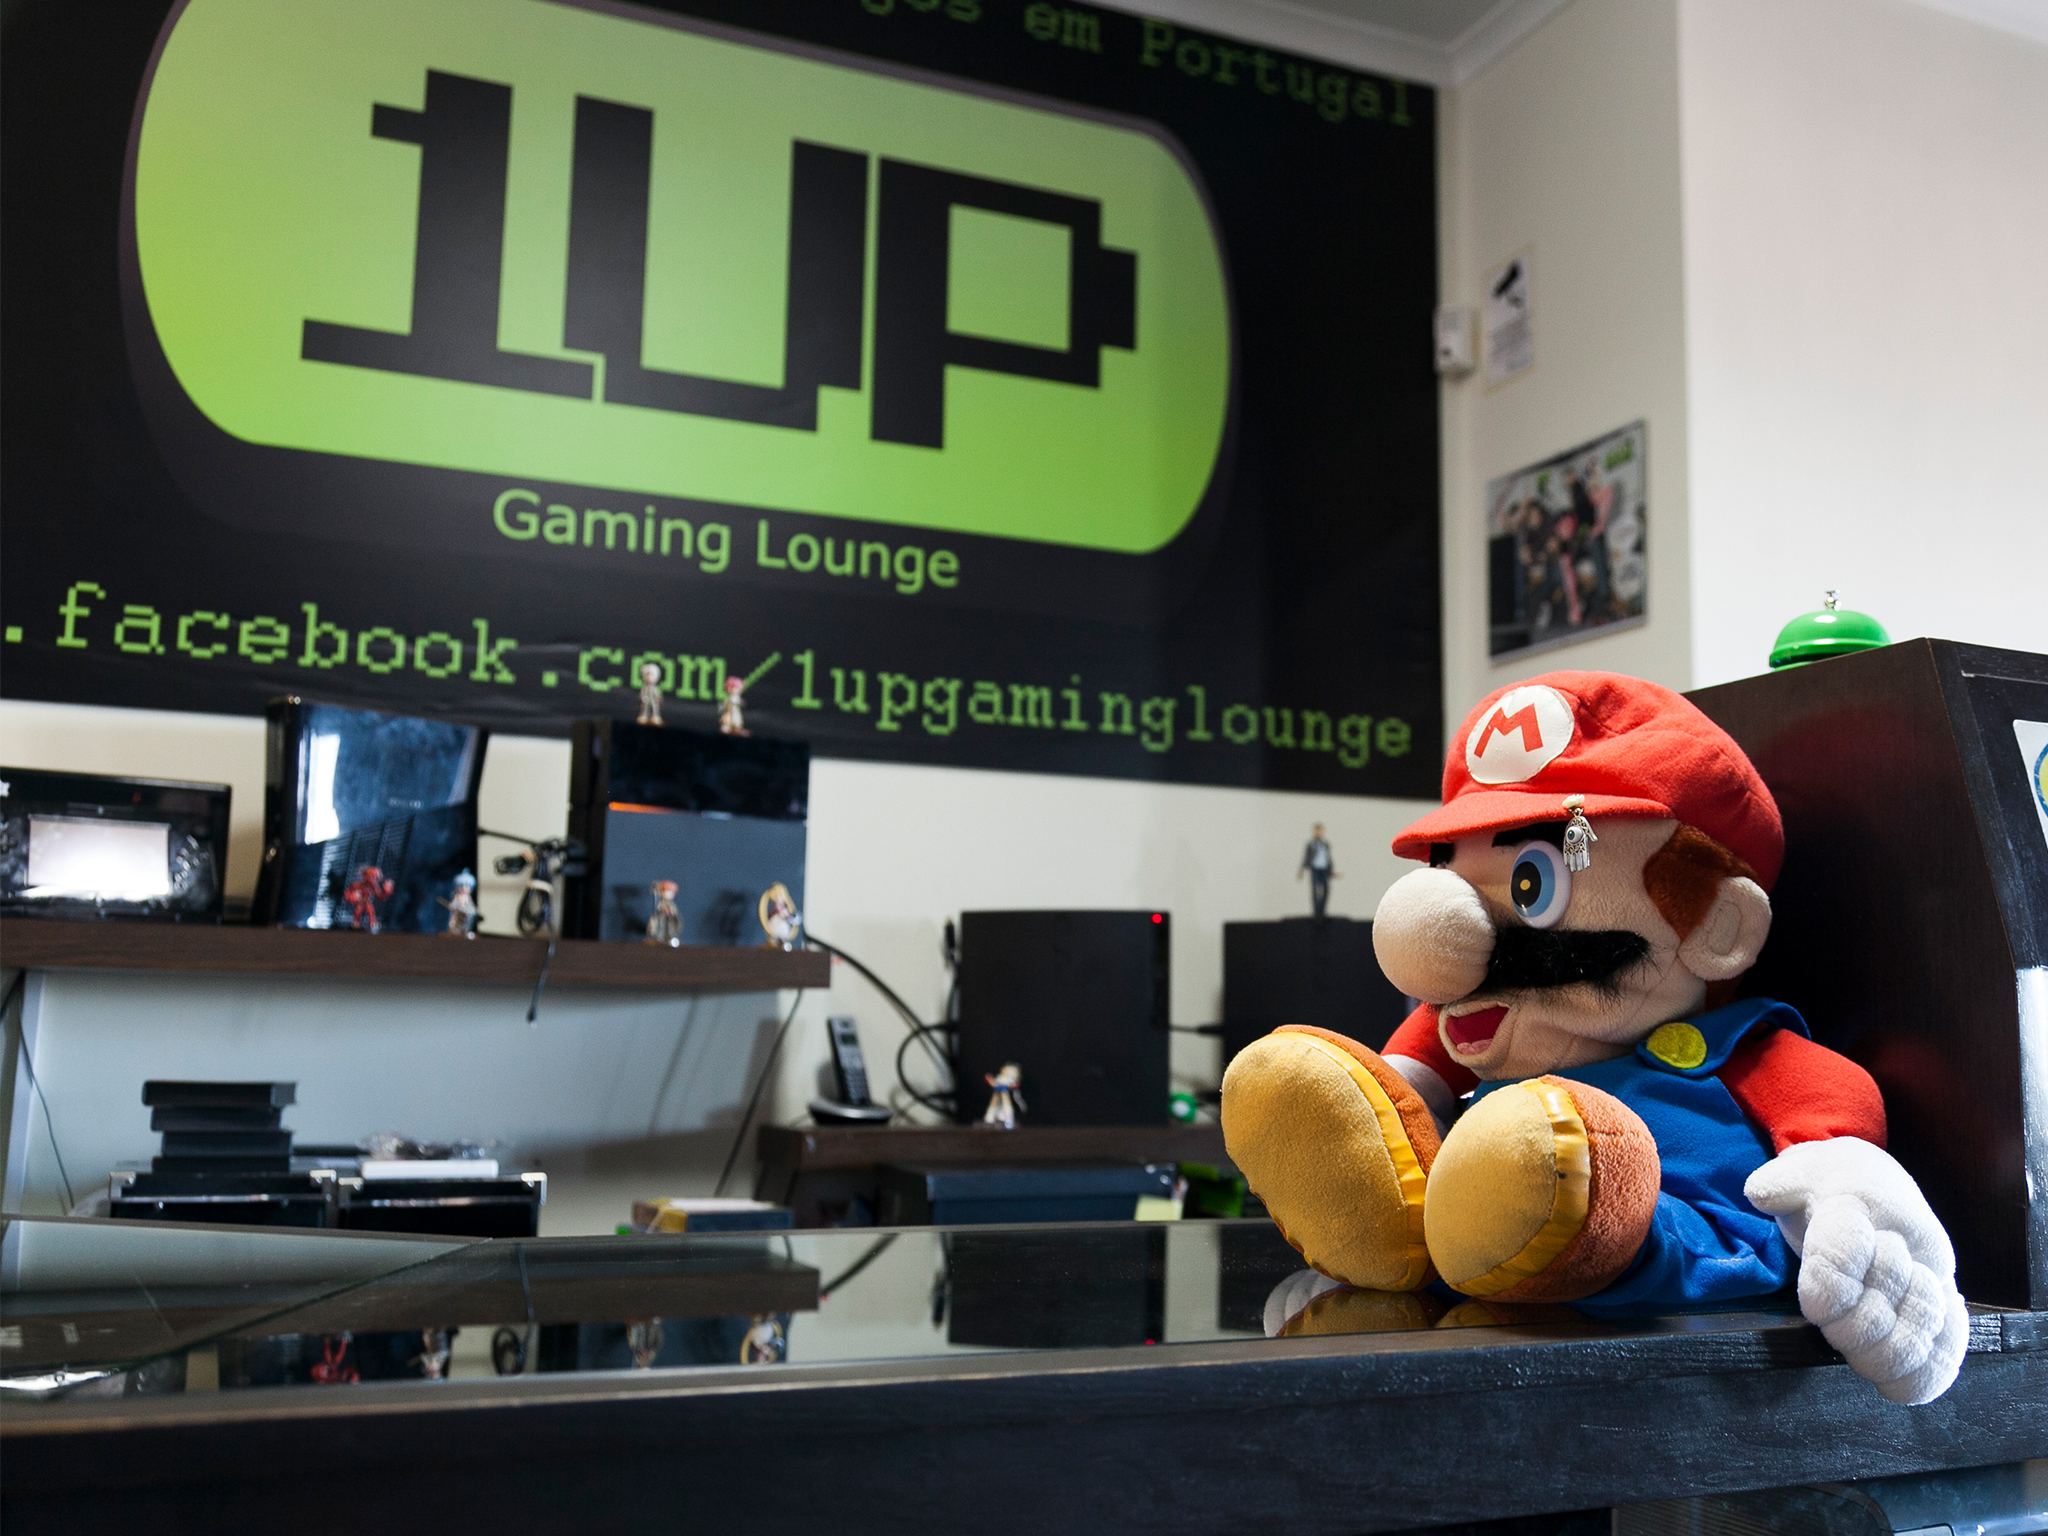 1UP Gaming Lounge